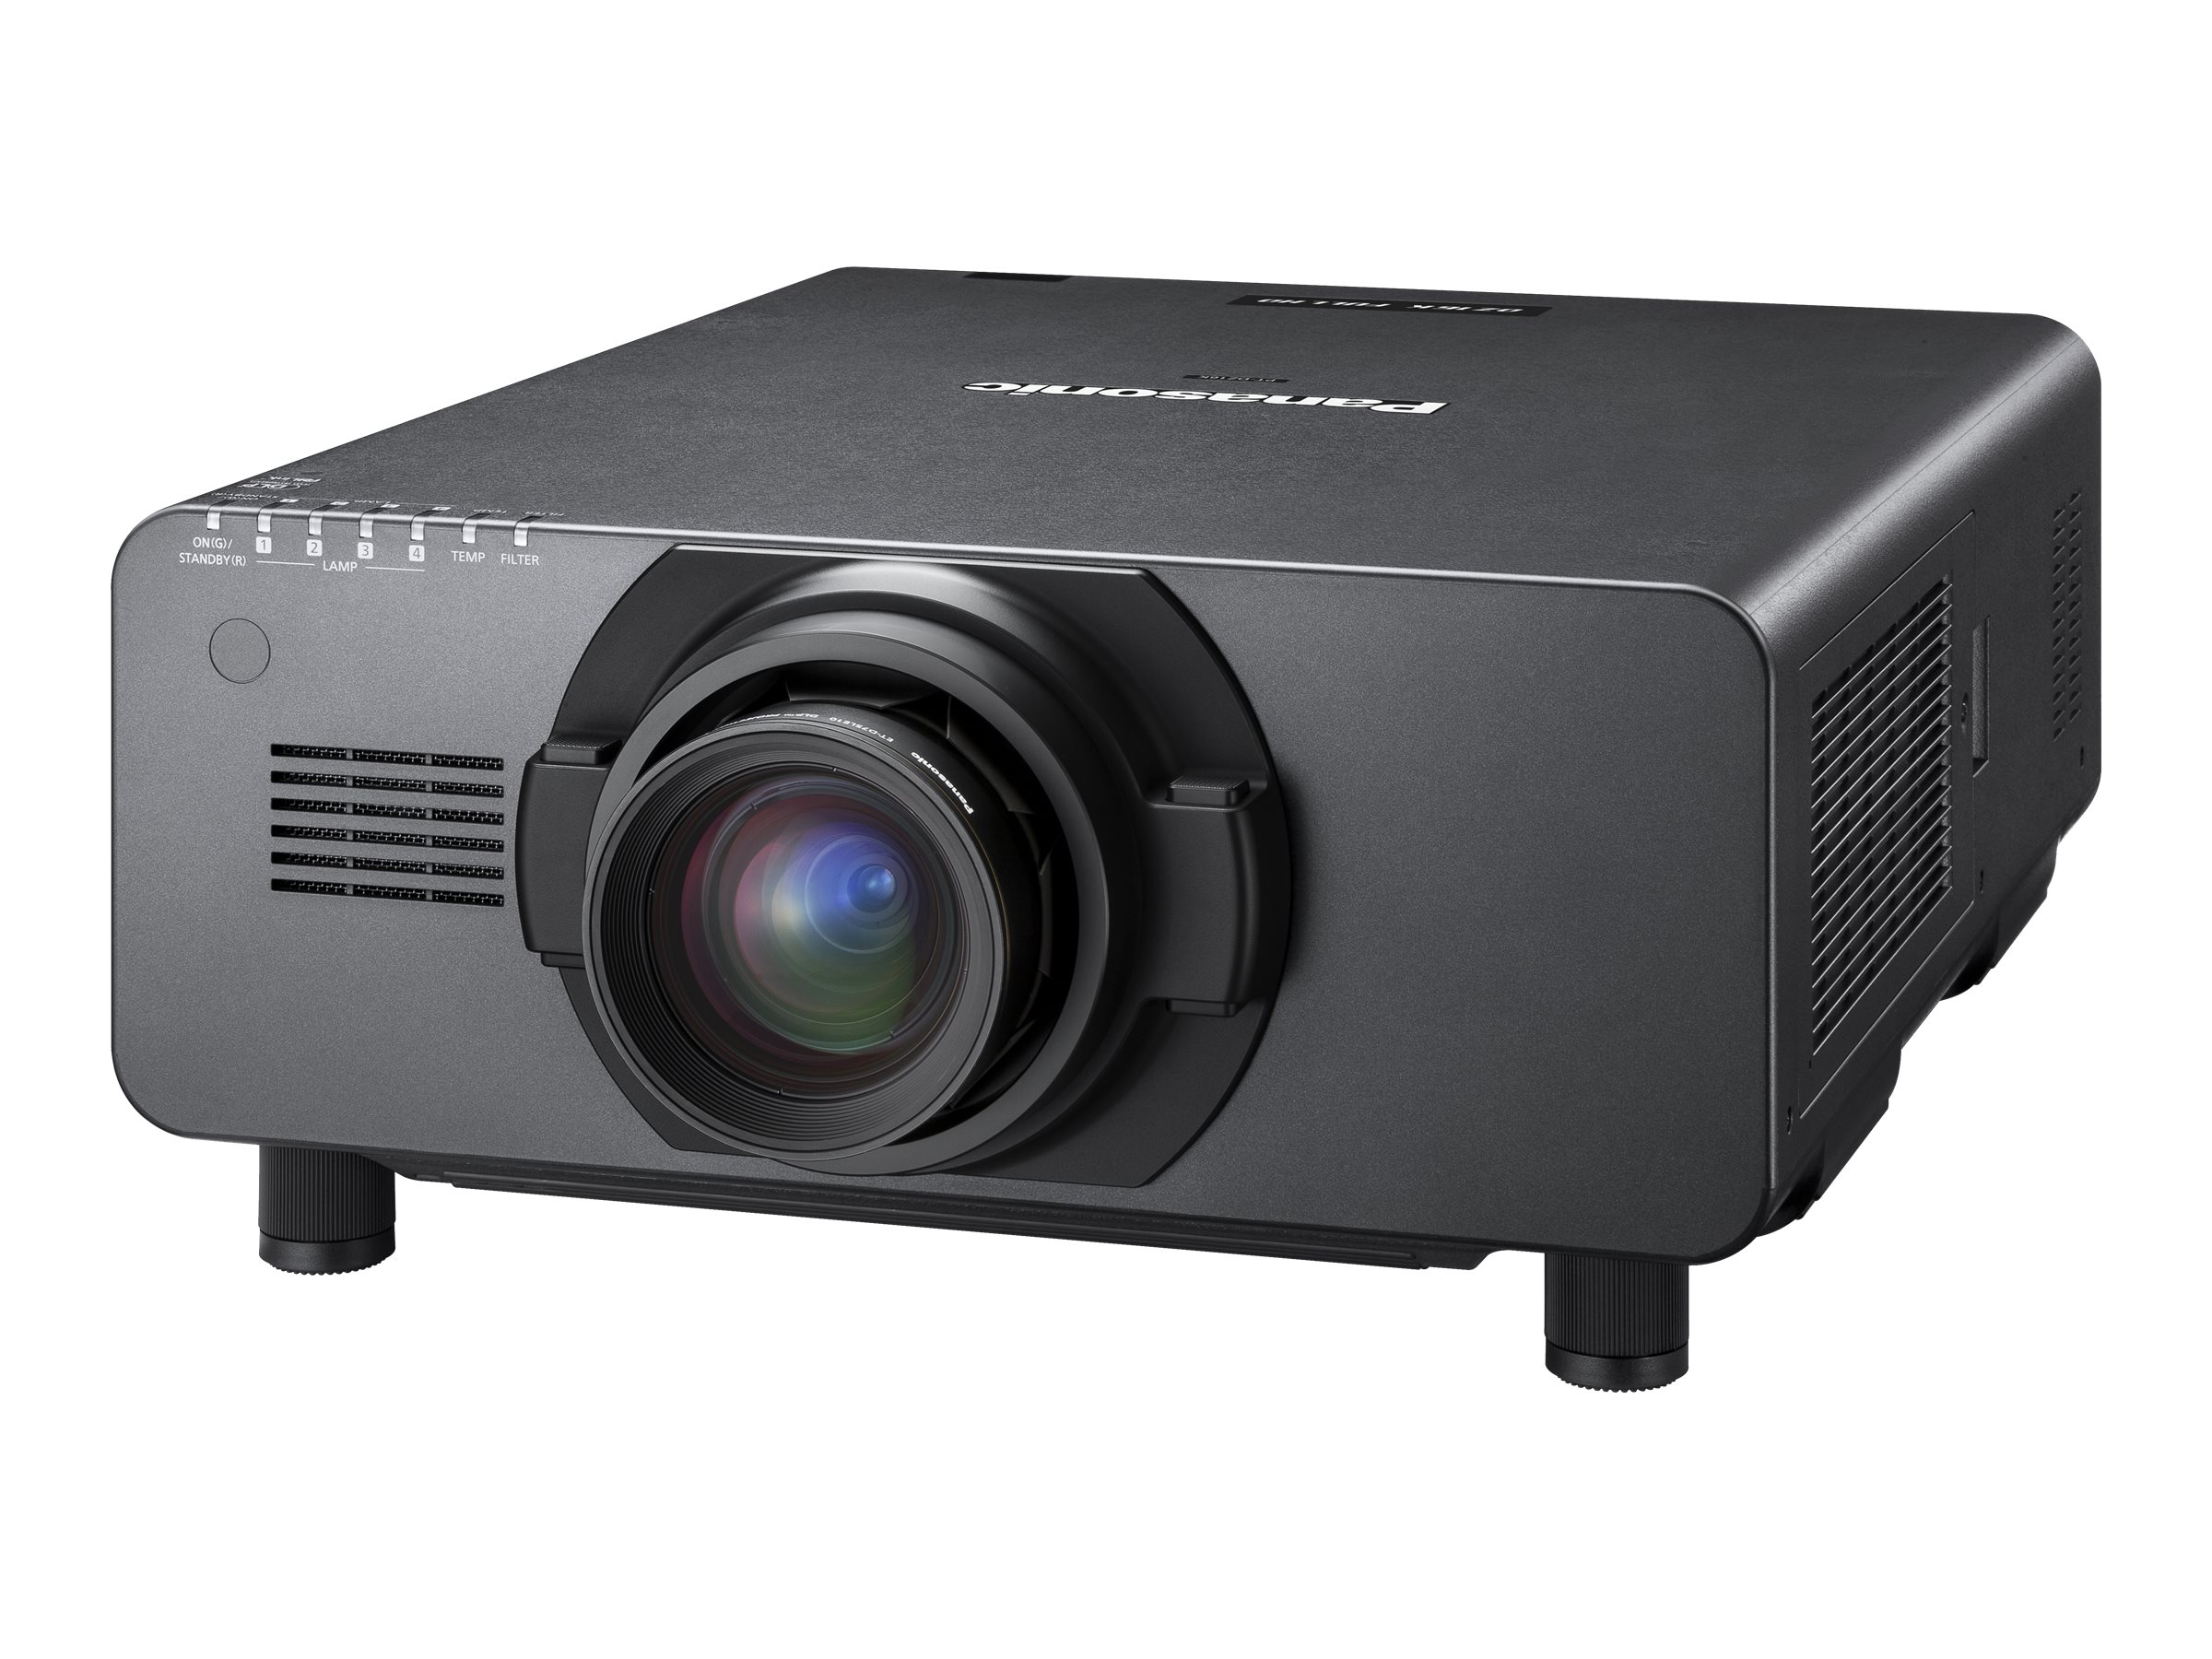 Panasonic PT-DZ16KU Full HD DLP Projector, 16000 Lumens, Black